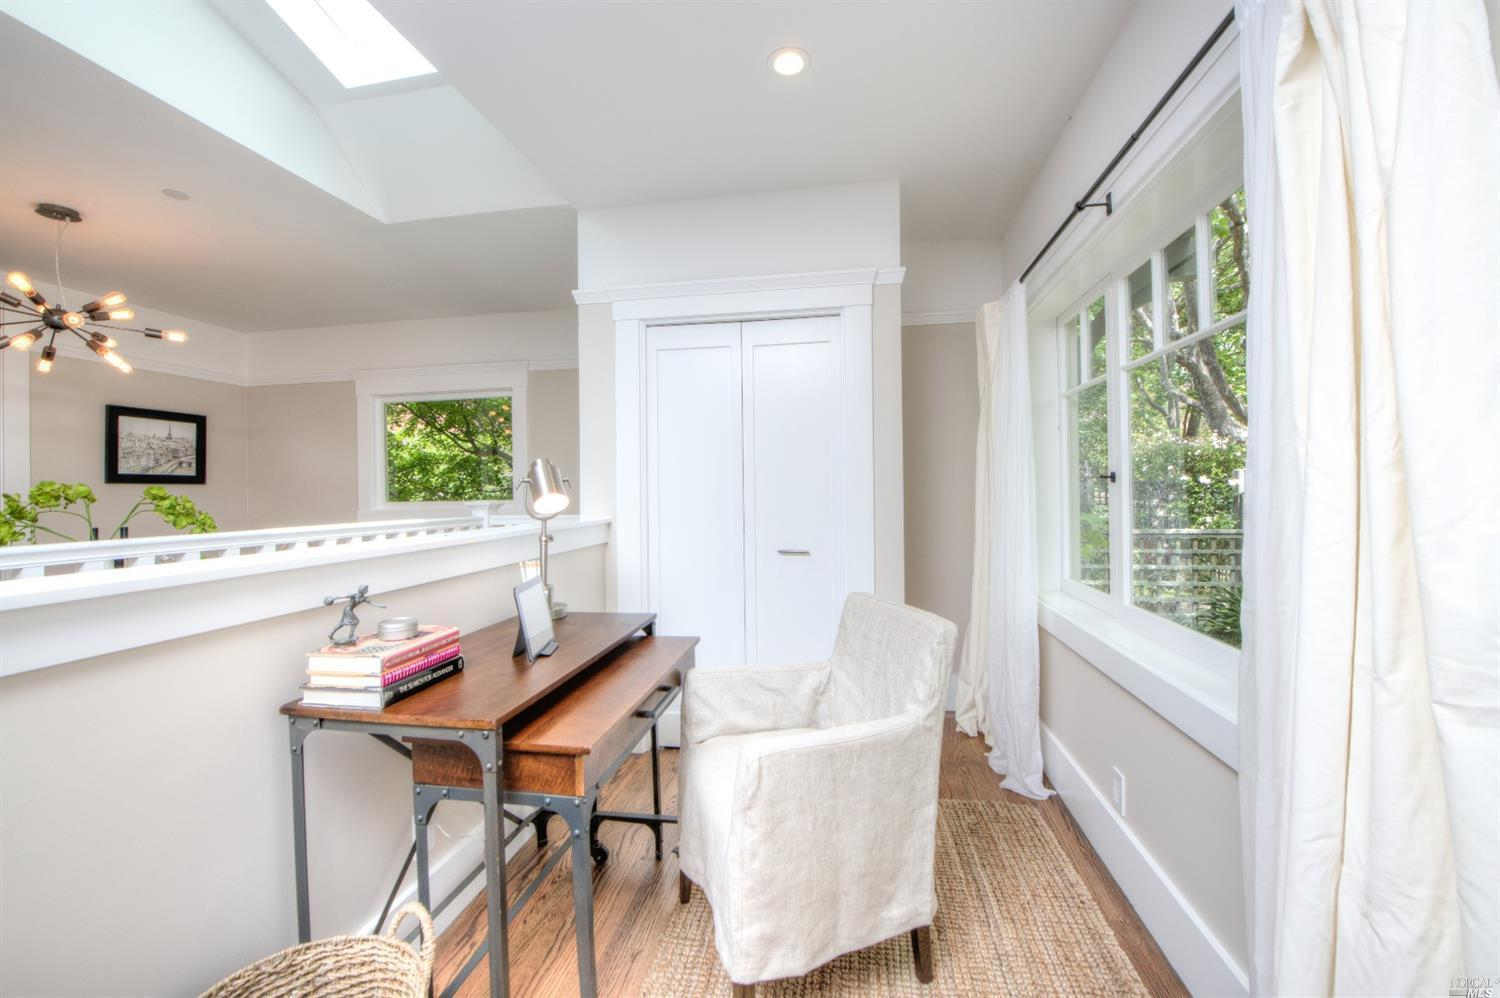 34 Sycamore Ave Mill Valley Ca 94941 2720 2 495 000 Www